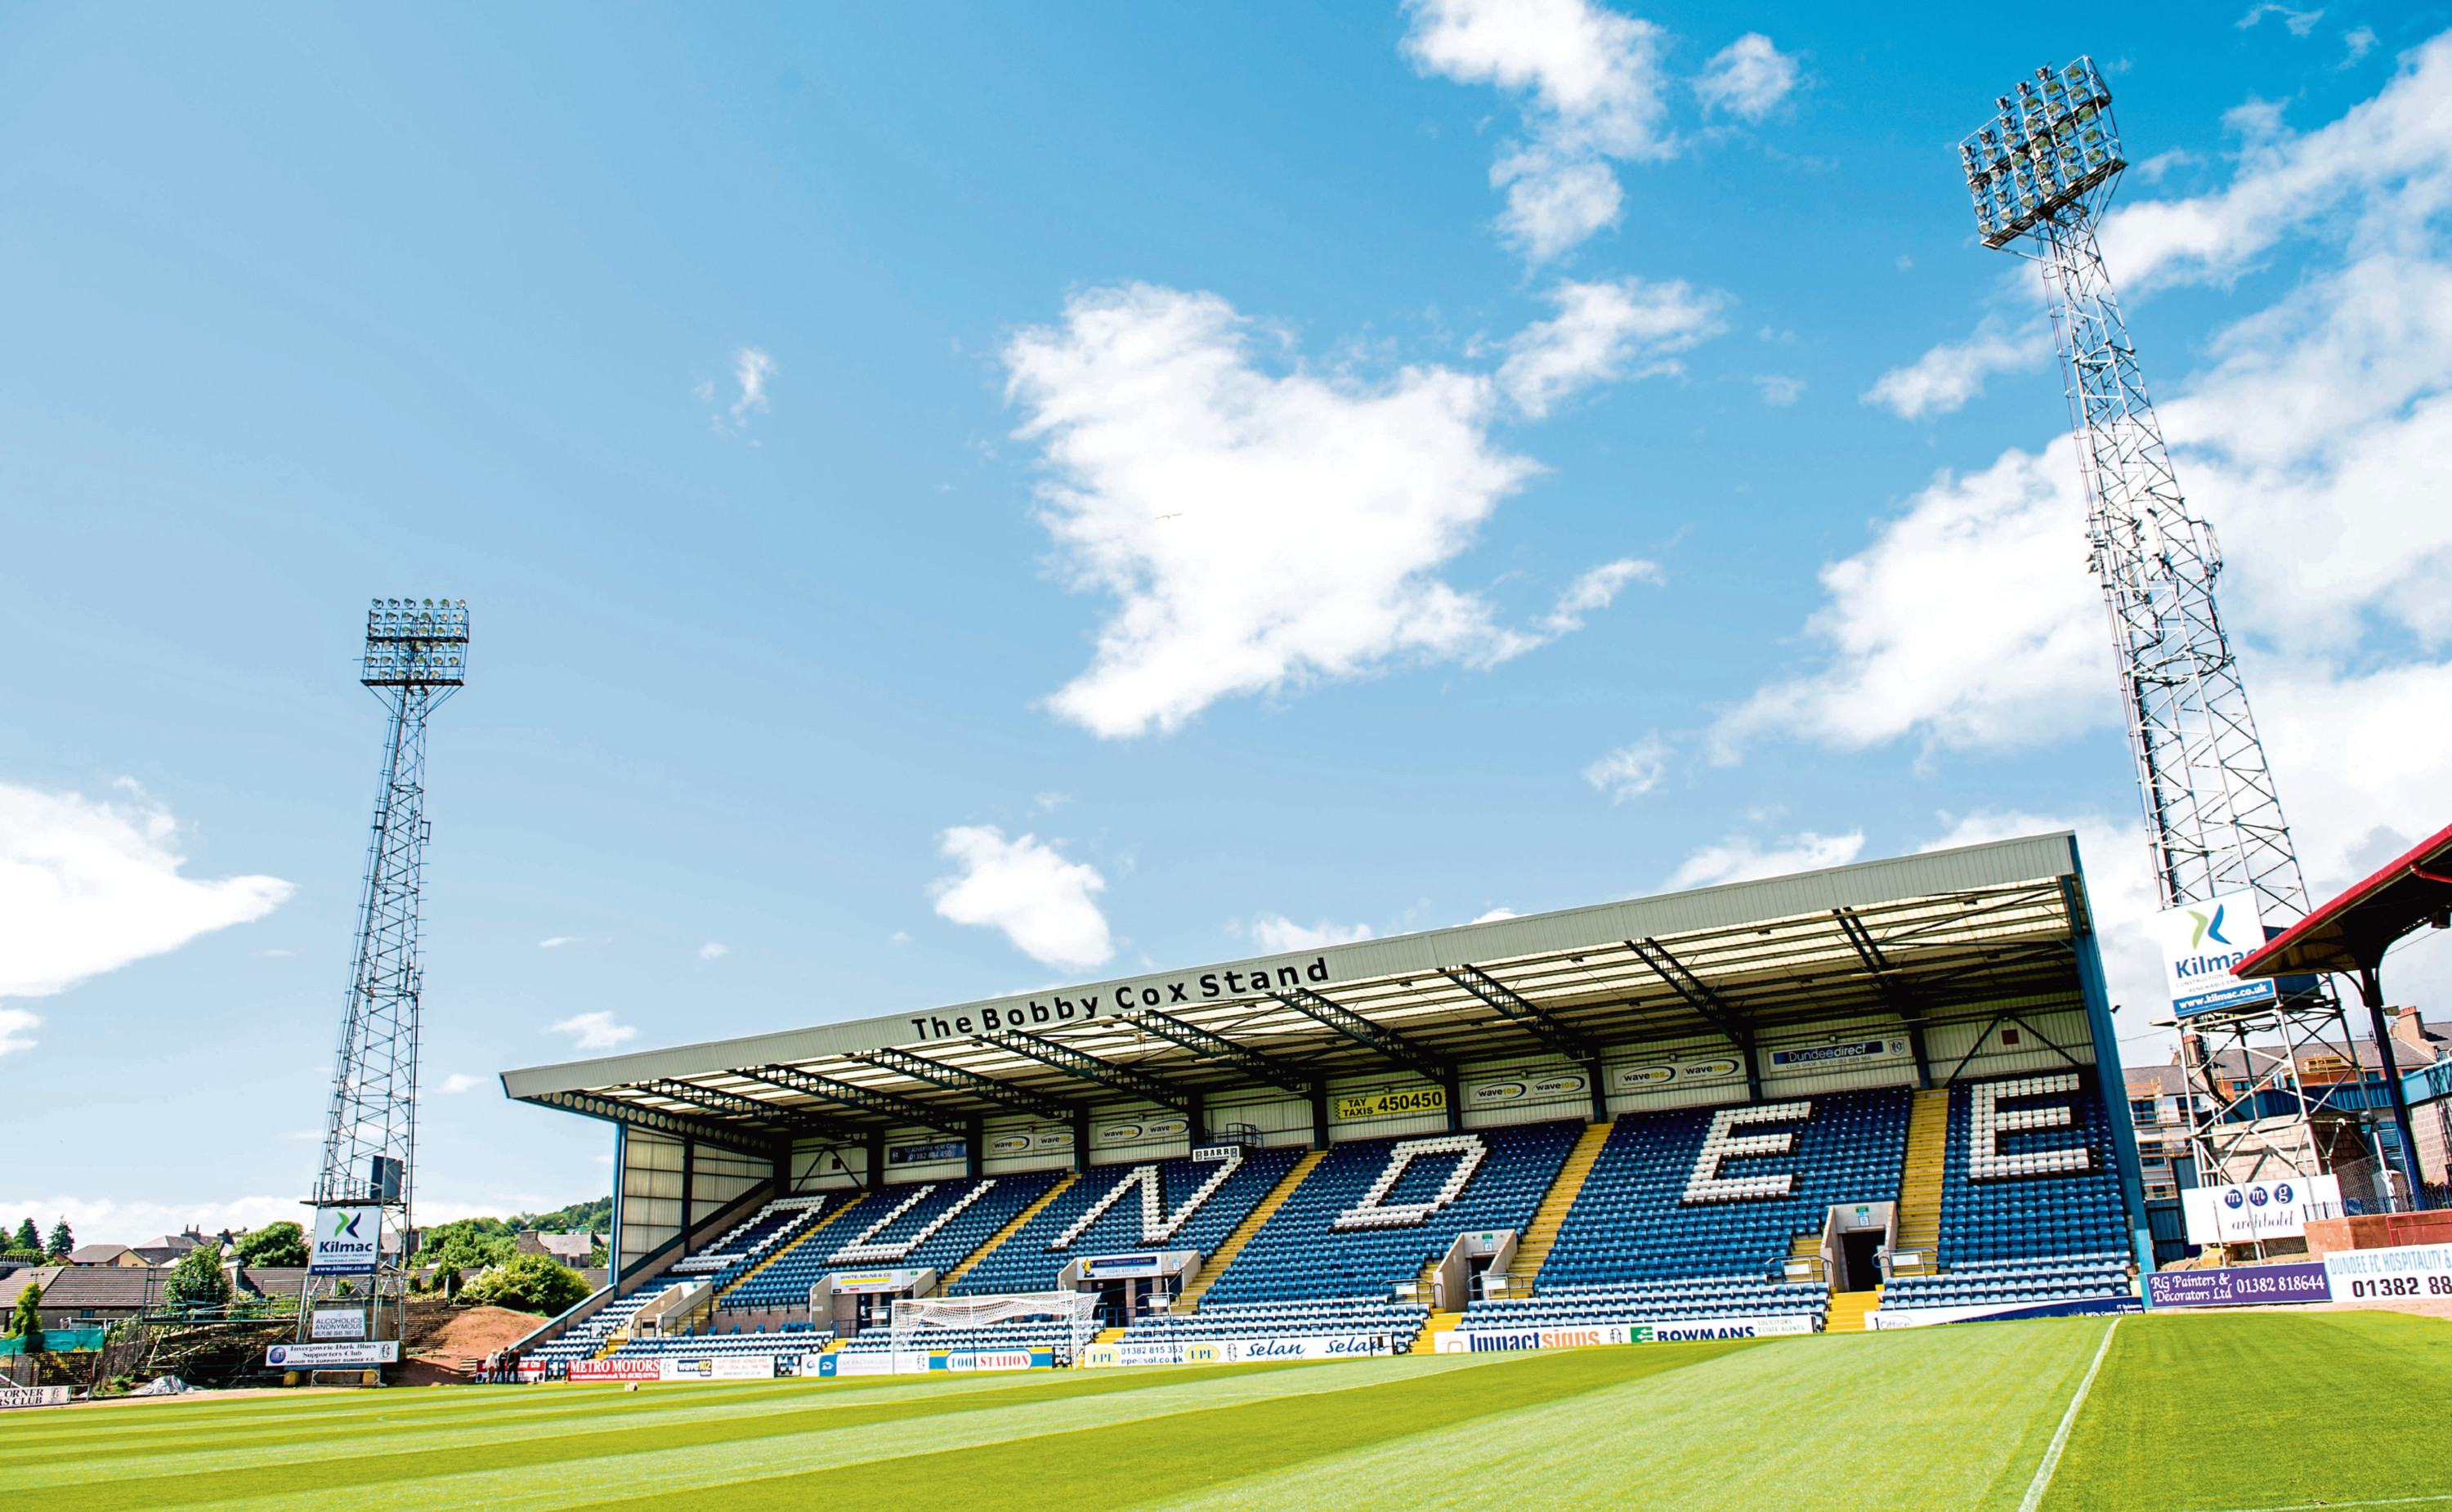 The Bobby Cox stand at Dundee's Dens Park.